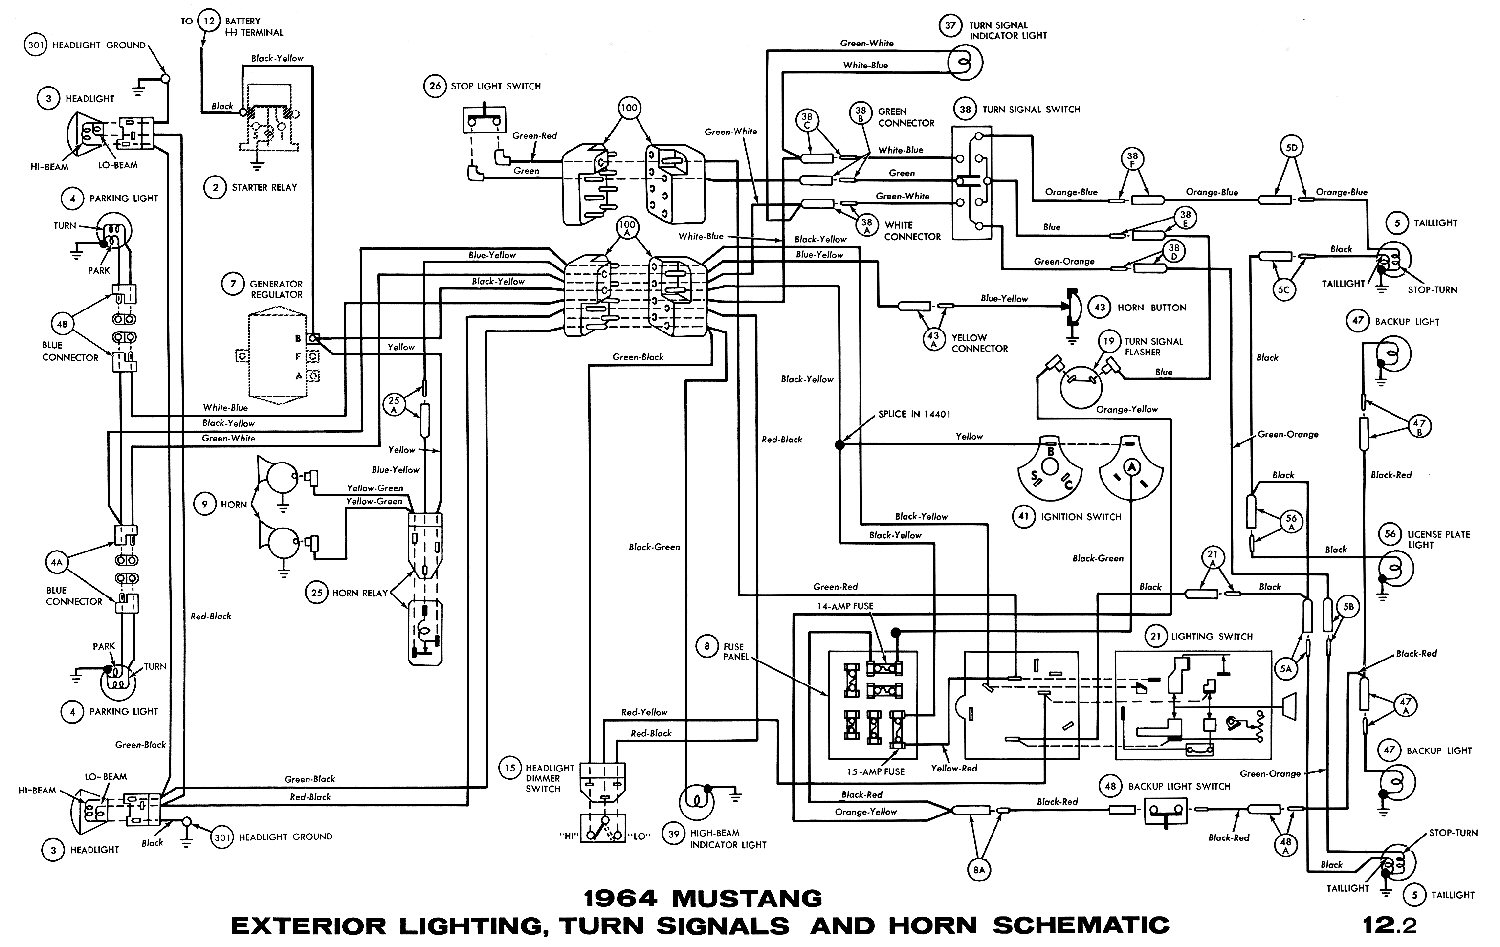 1964i 1964 mustang wiring diagrams average joe restoration 1967 mustang turn signal wiring diagram at cos-gaming.co